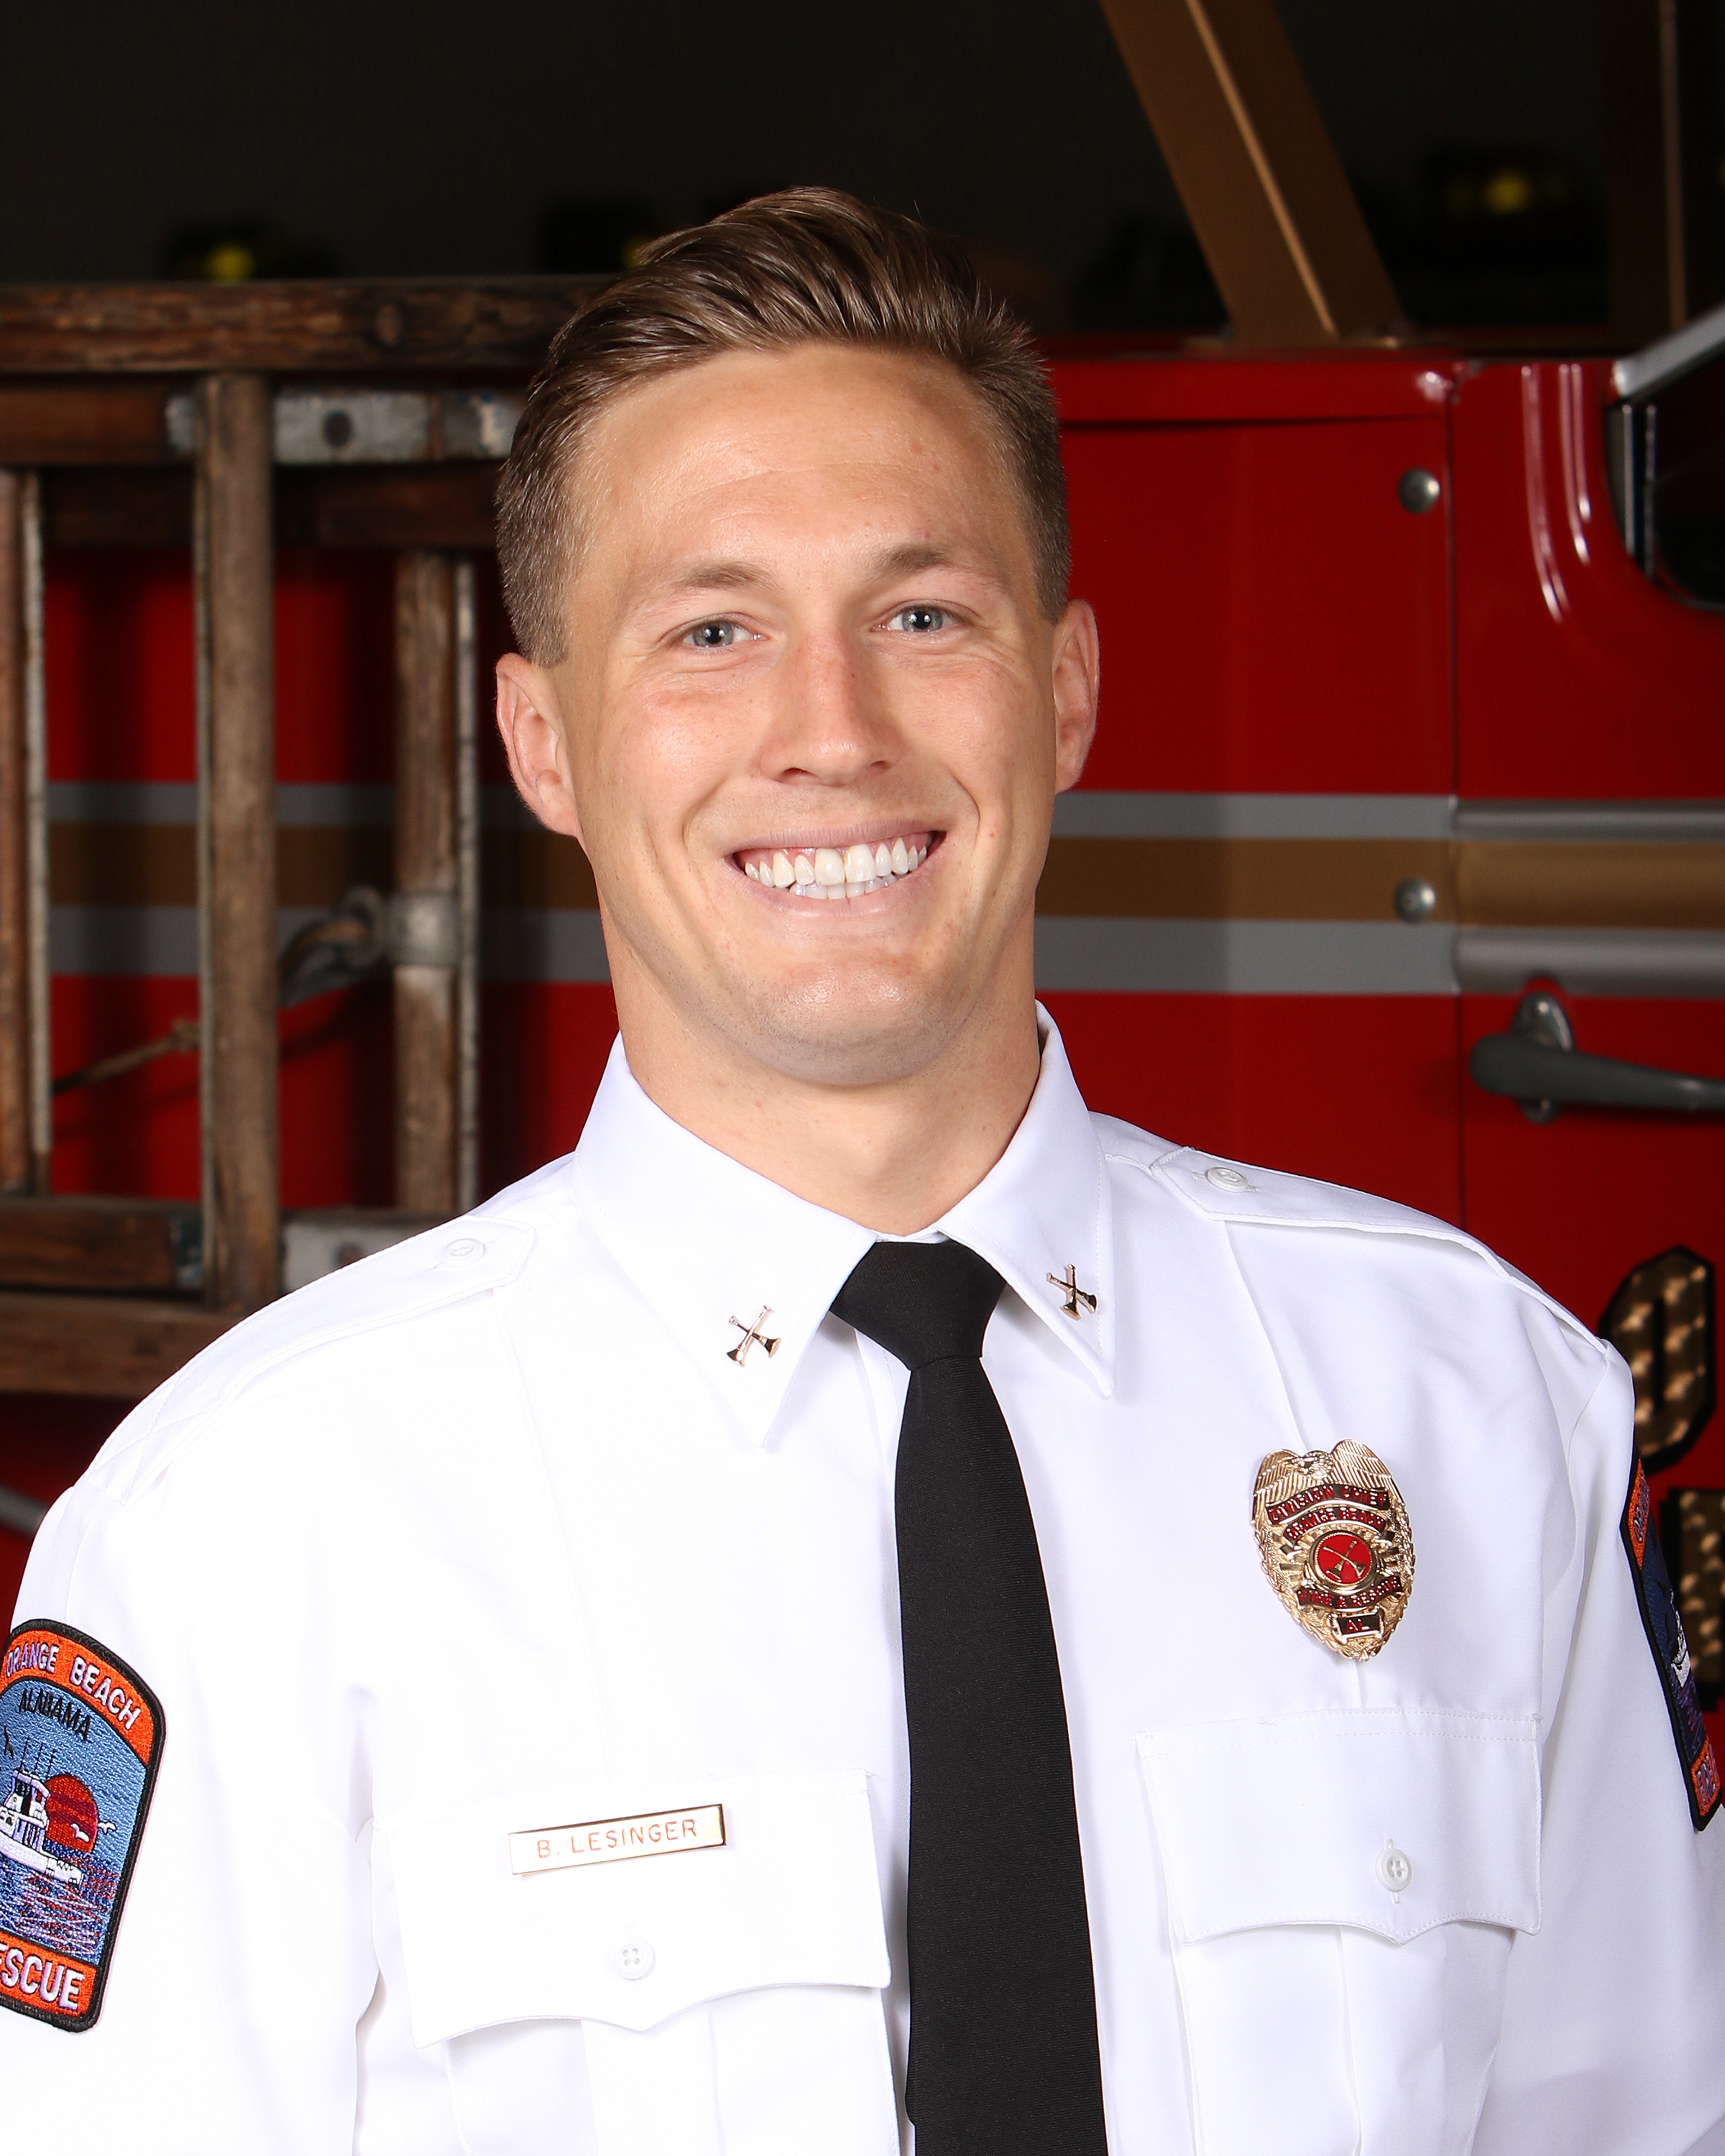 Orange Beach Fire Beach Safety Division Chief Brett Lesinger